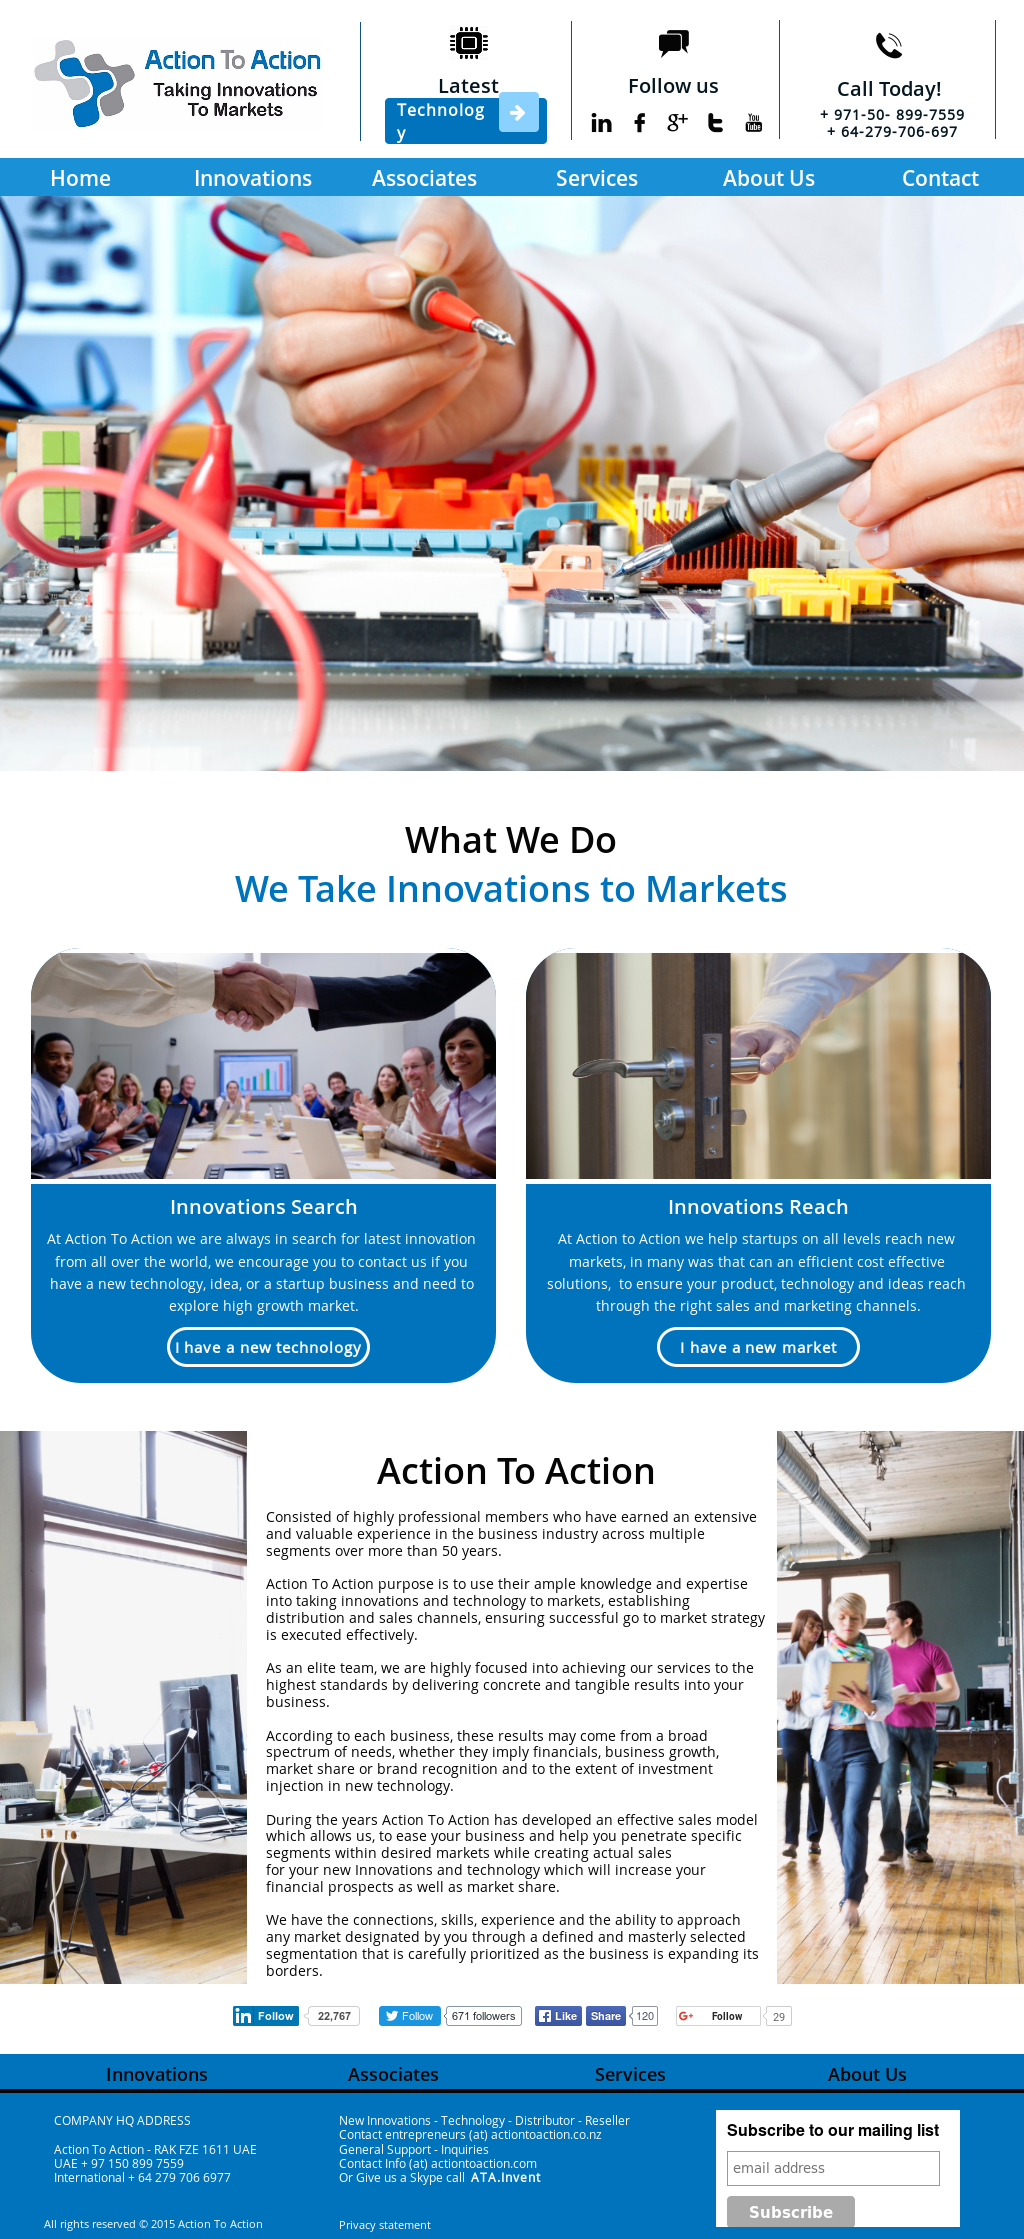 Actiontoaction Competitors, Revenue and Employees - Owler Company